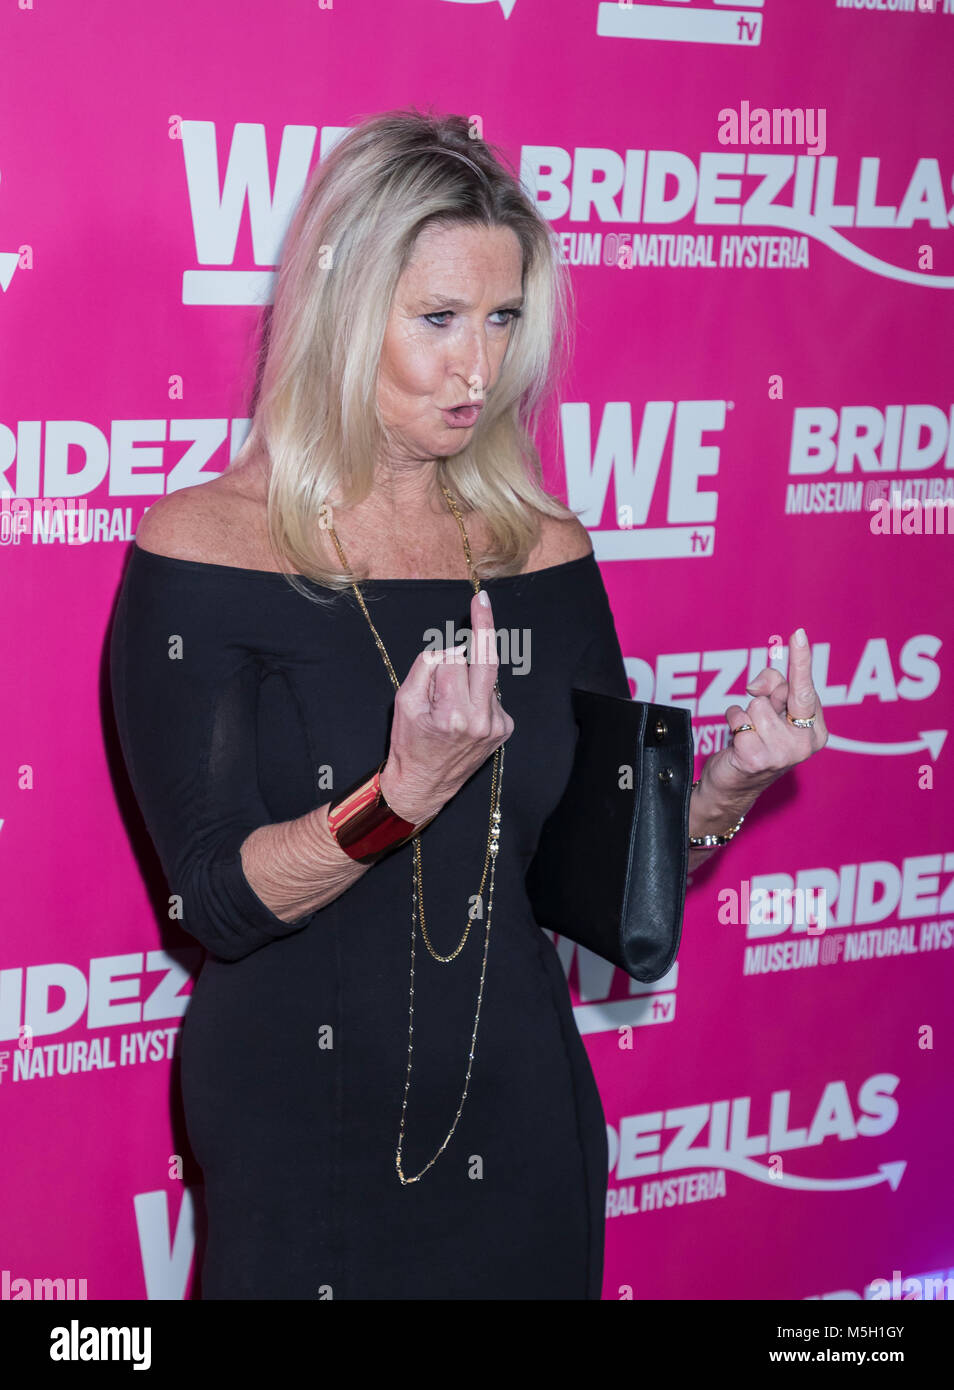 New York, USA. 22nd Feb, 2018. Celebrity Trainer Donna Sexton attends WE TV Launches Bridezillas Museum Of Natural - Stock Image